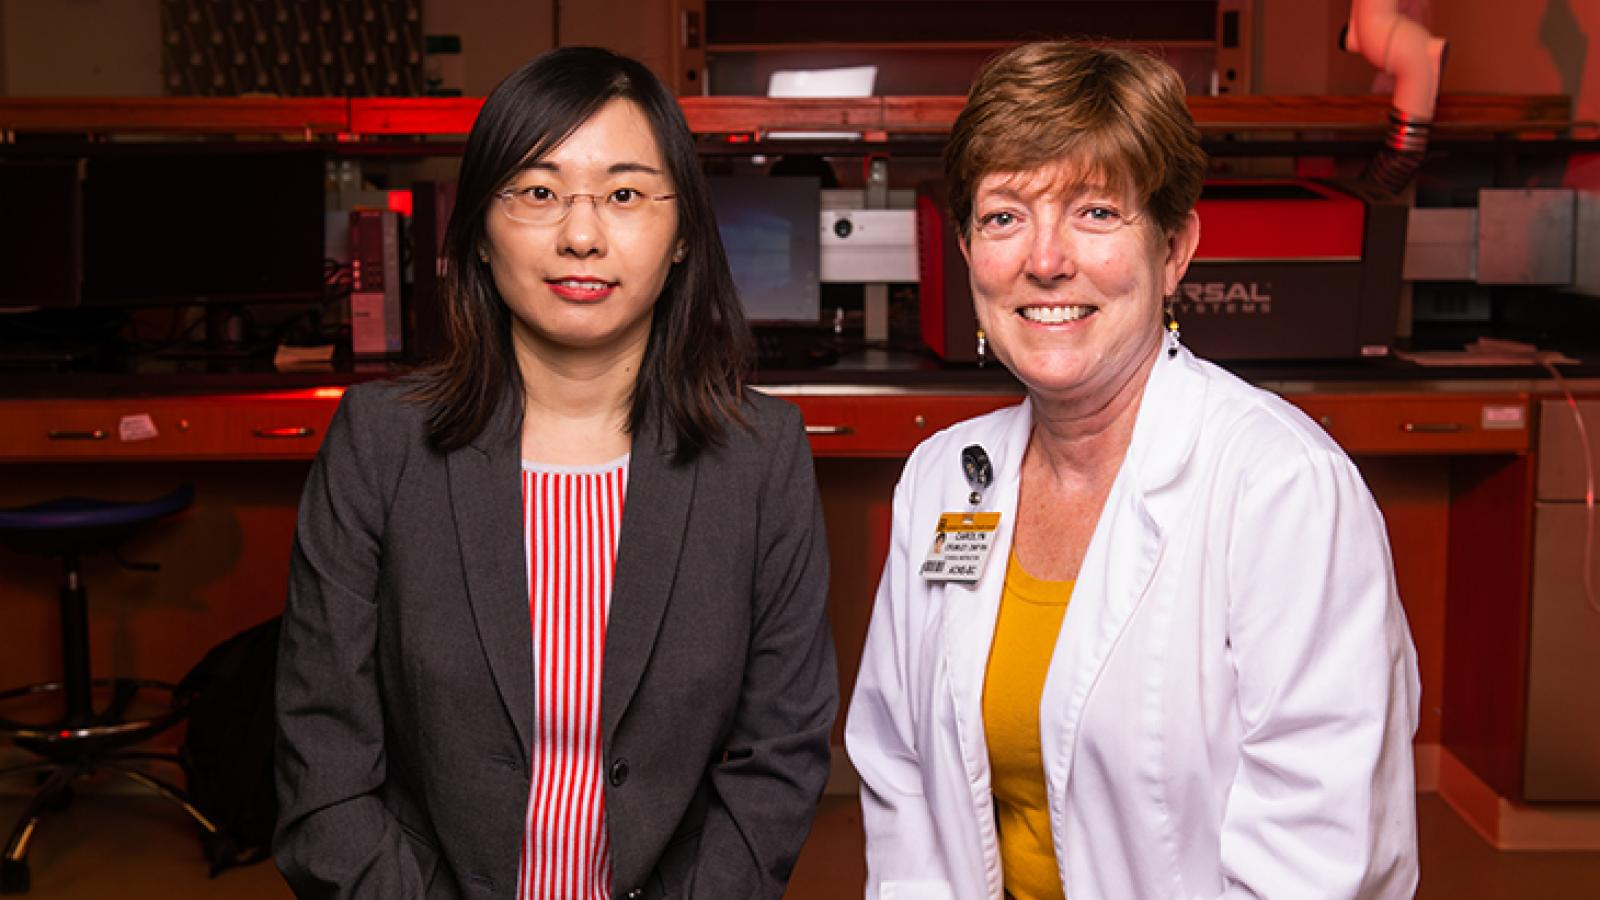 photo of Dr. Wang and Dr. Crumley